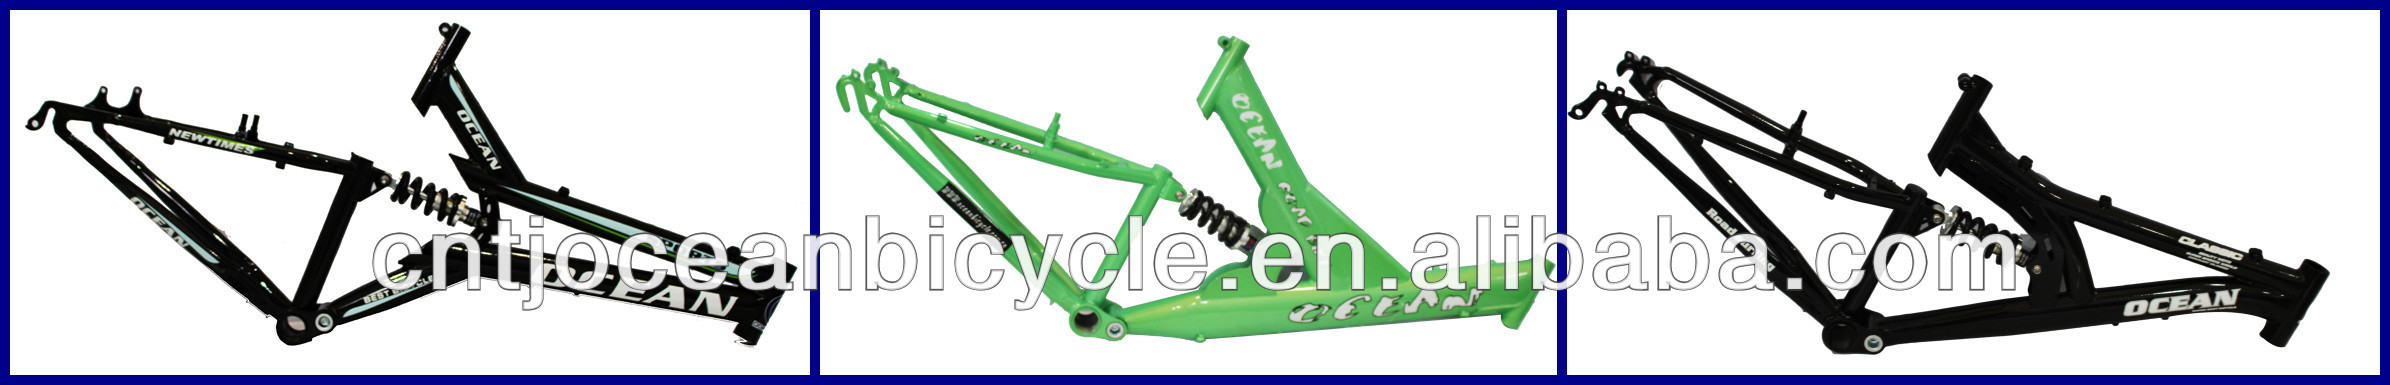 Tianjin Factory Produce Good Quality Steel MTB Frame On Sale